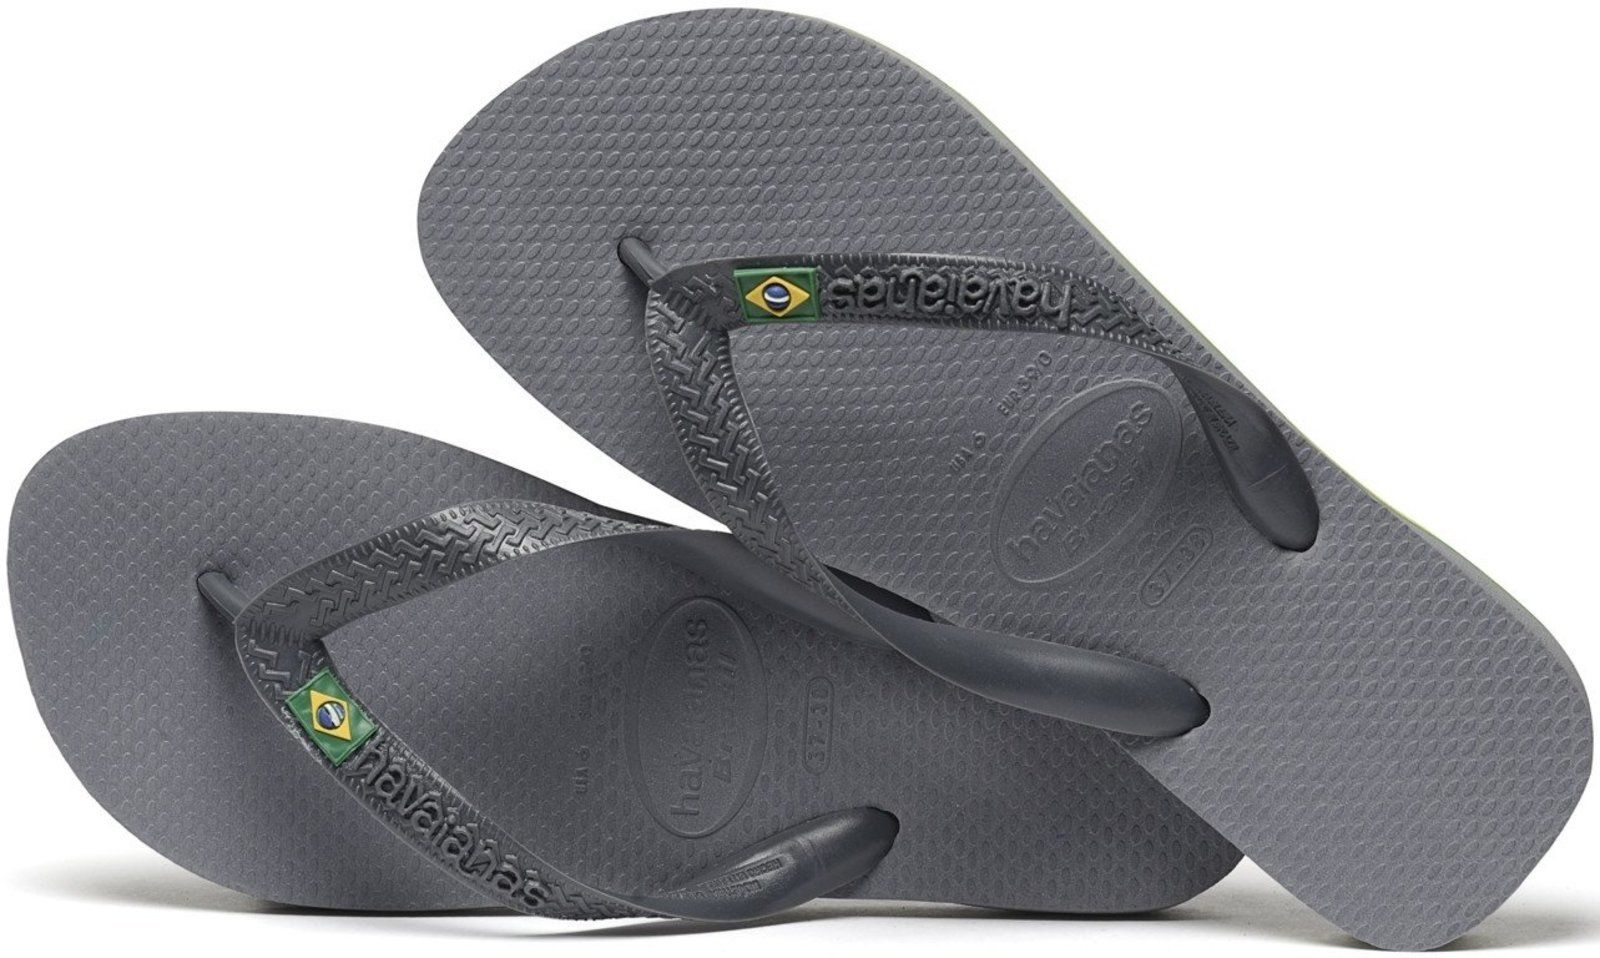 fdf2de660a74ba Havaianas Brazil Toe Post Flip Sandal Pool Shoes Slippers 4000032 Gray 5  Steel Grey 4000032.5178 for sale online